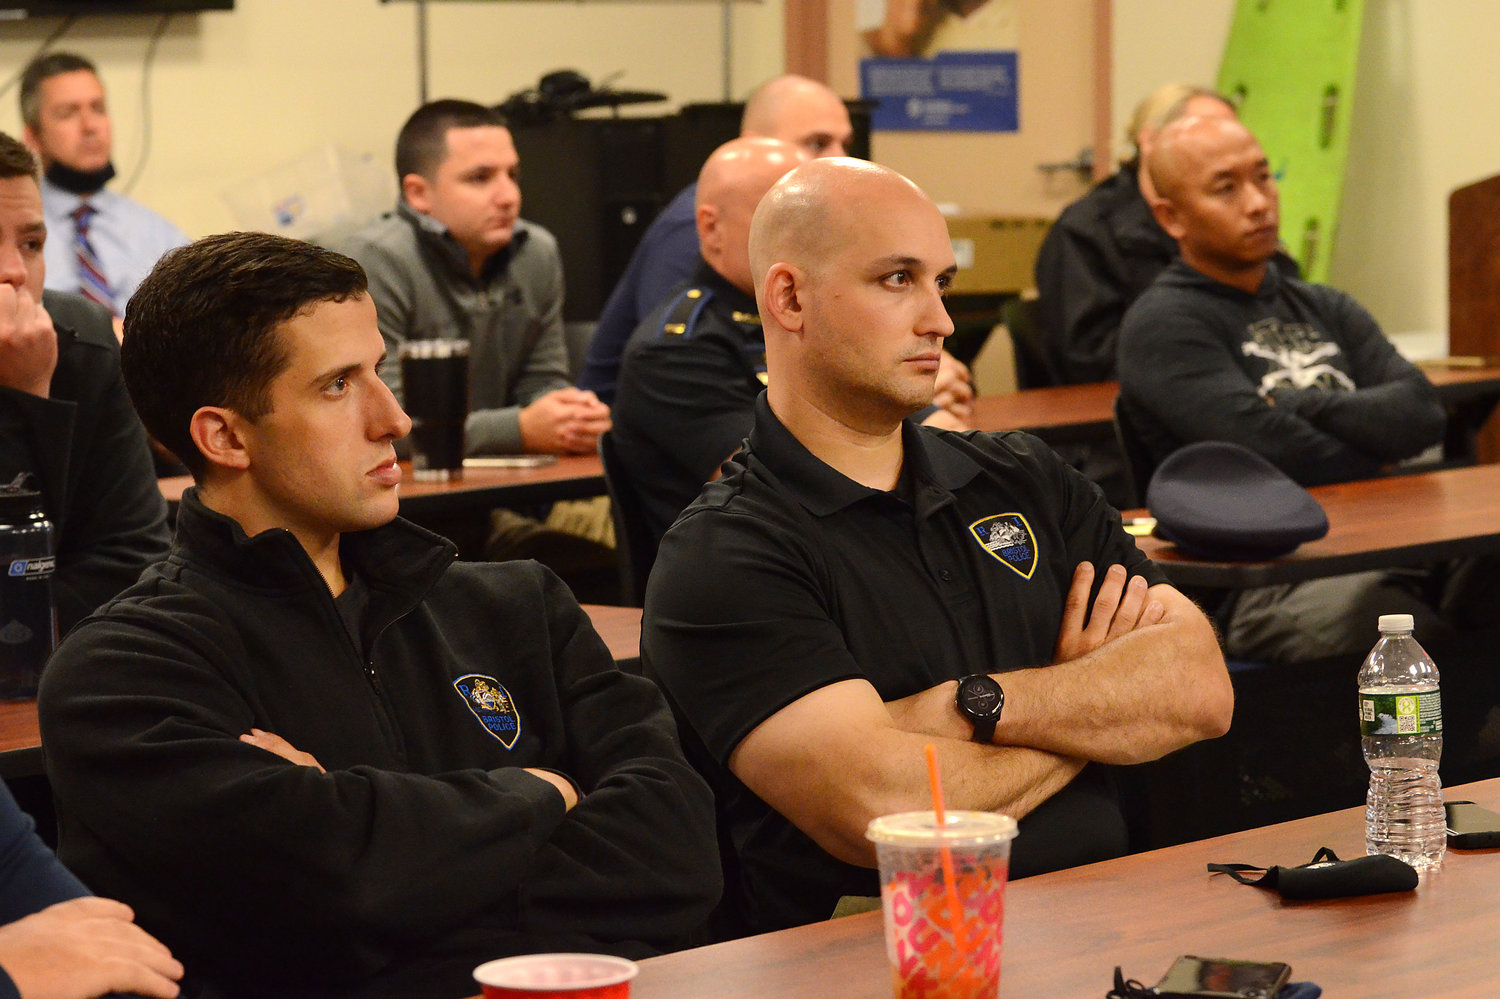 Bristol police officers (from left) Adam Almeida and Alex Booth look on as state troopers conduct a diversity training for the department on Wednesday.